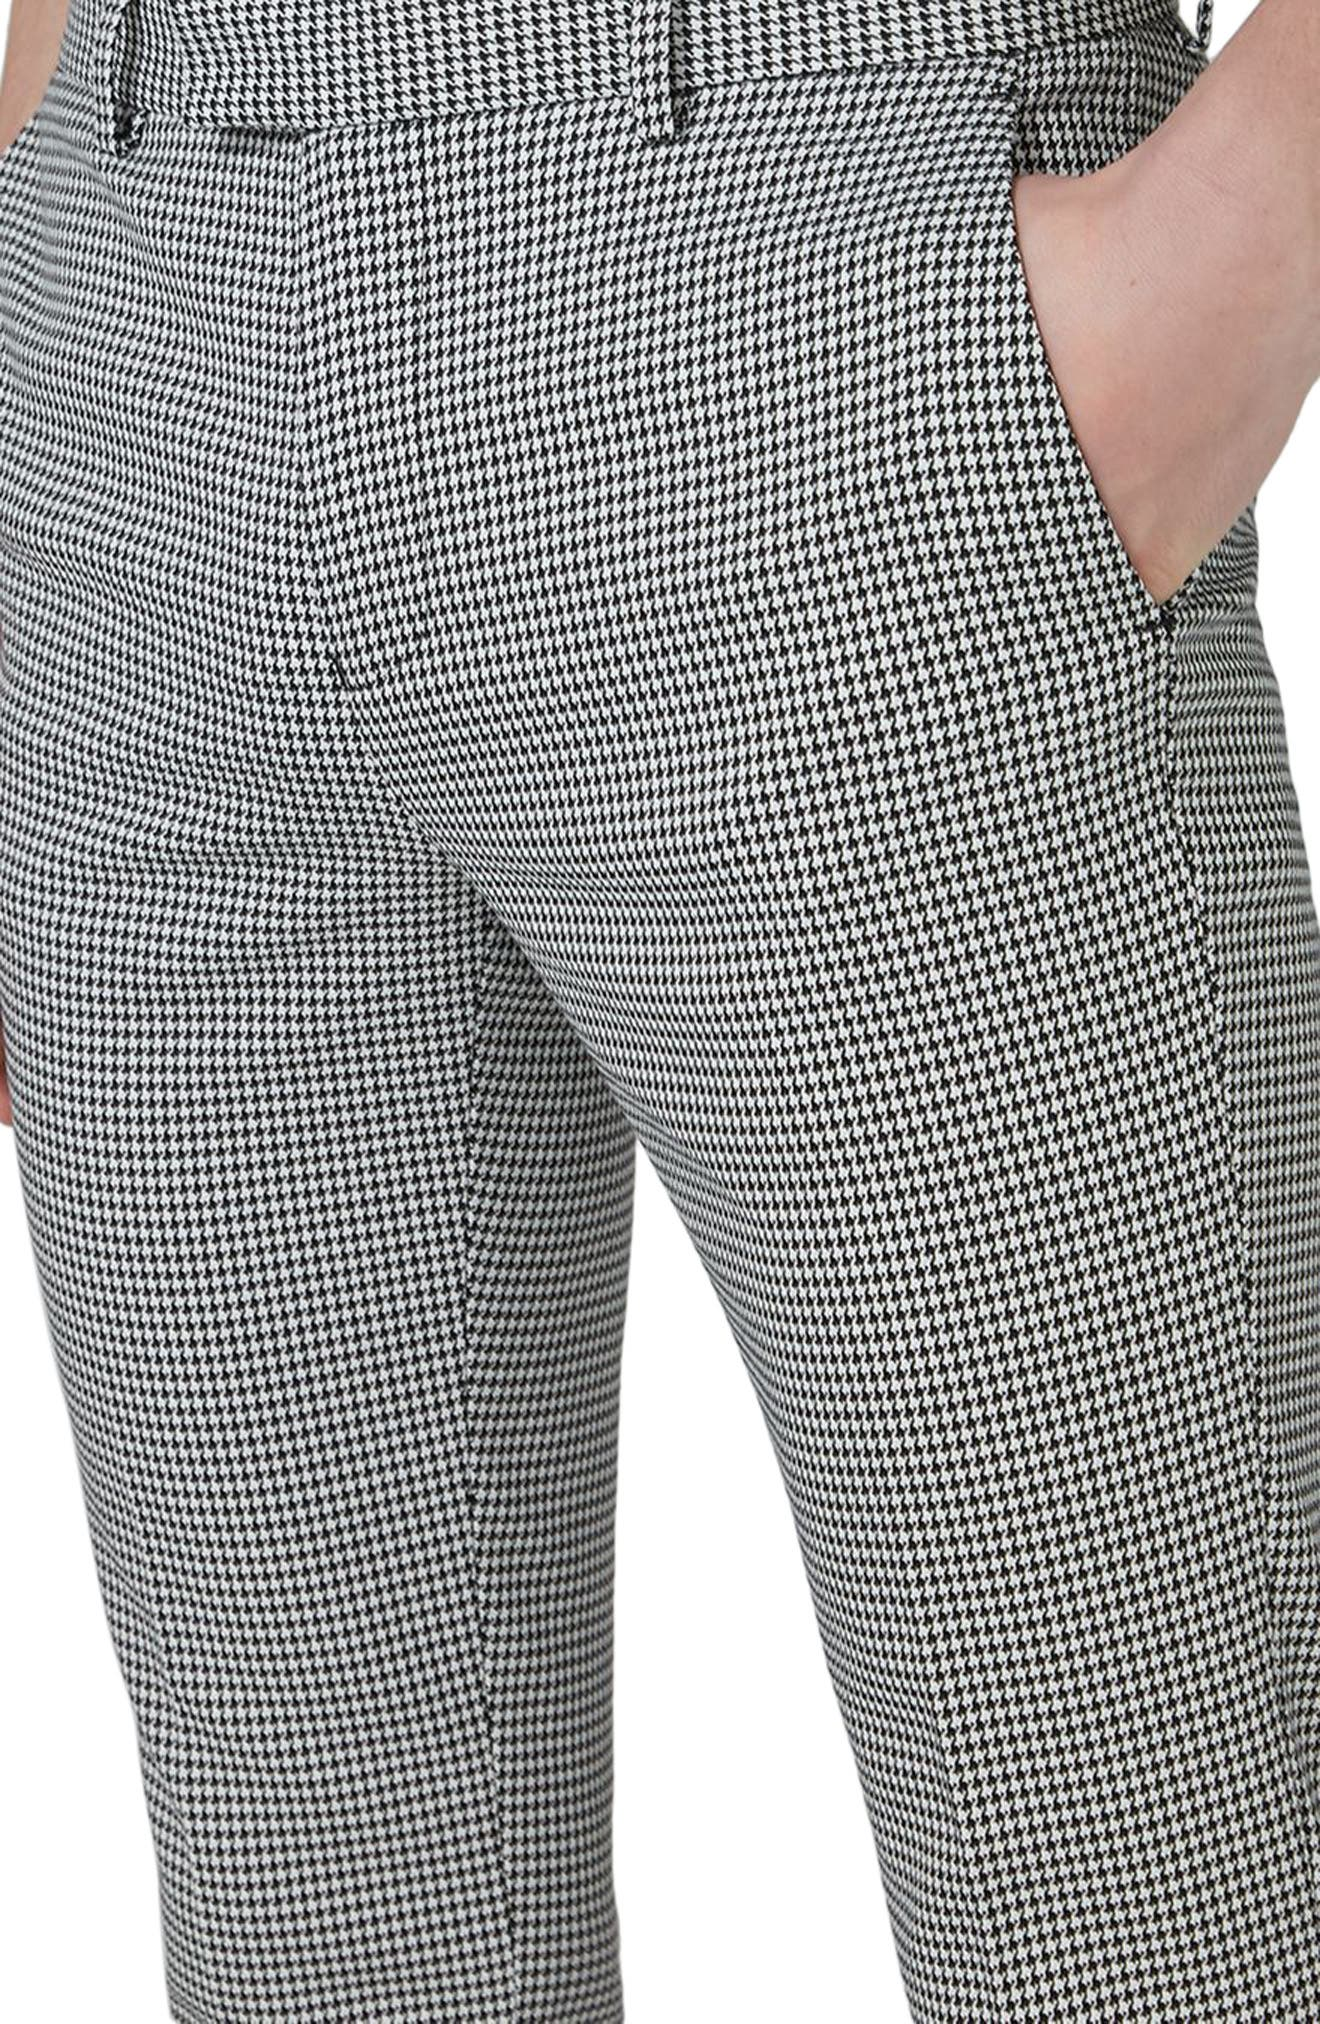 Ultra Skinny Fit Houndstooth Suit Trousers,                             Alternate thumbnail 3, color,